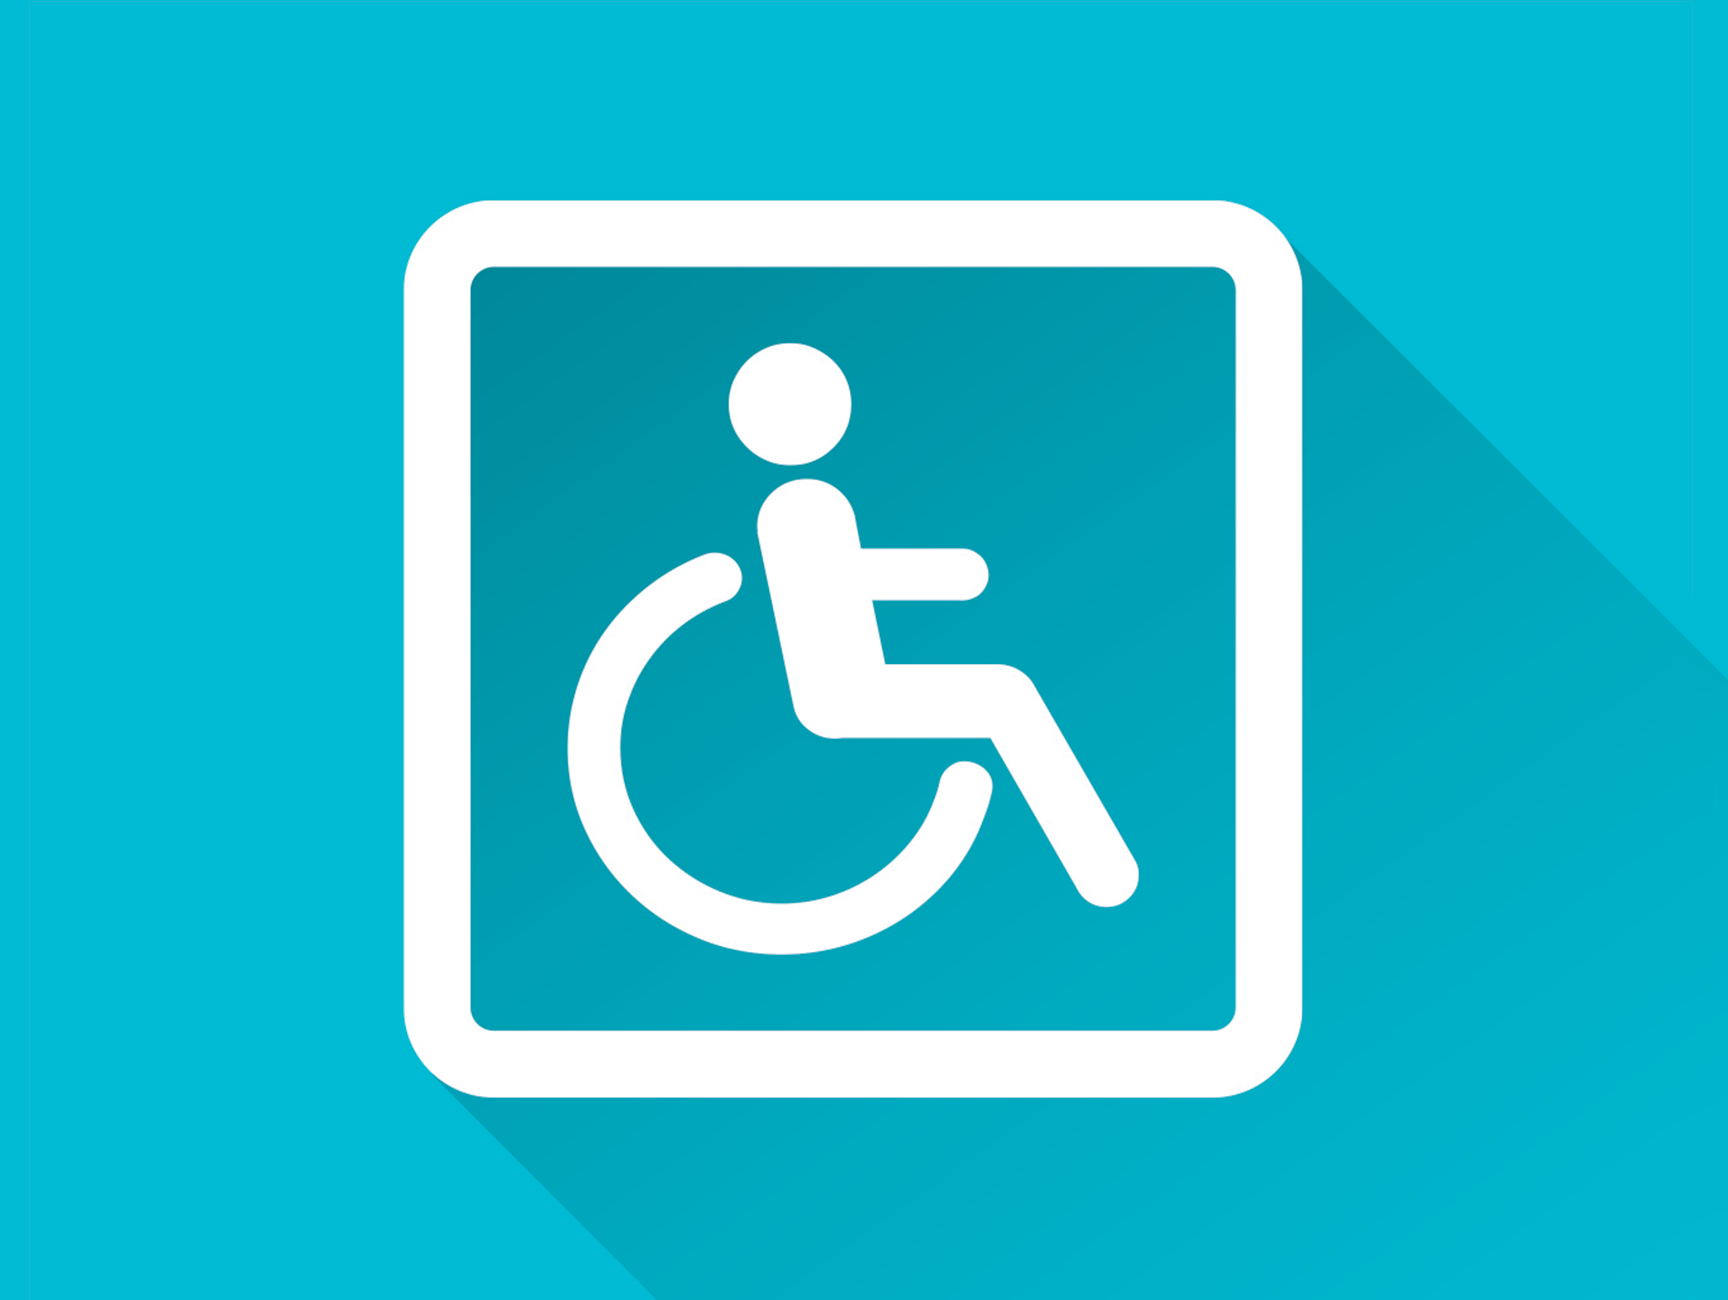 Illustration of an accessibility icon